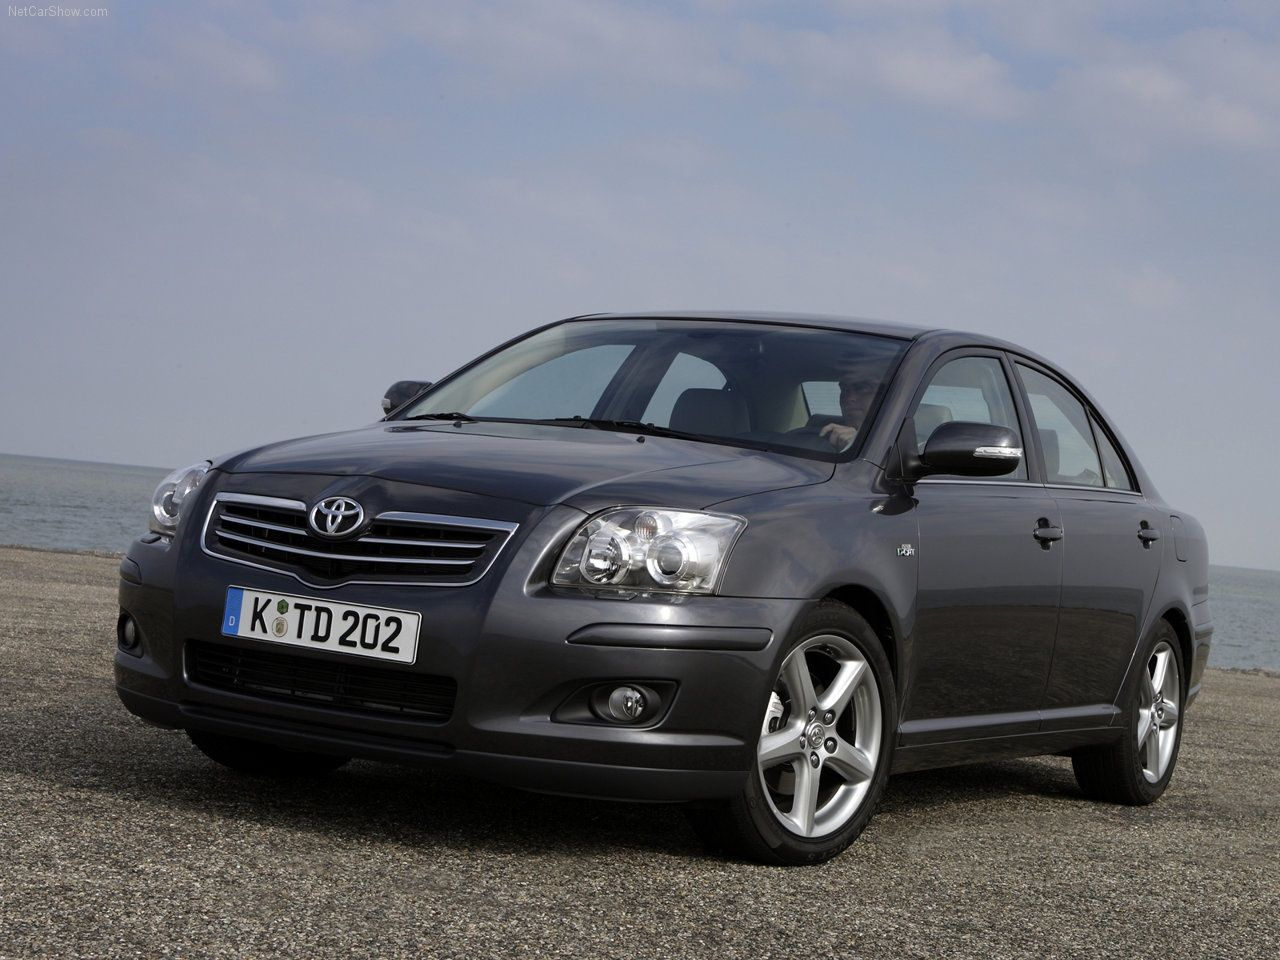 hight resolution of enjoy free pdf download of 2002 2007 toyota avensis electrical wiring diagrams this